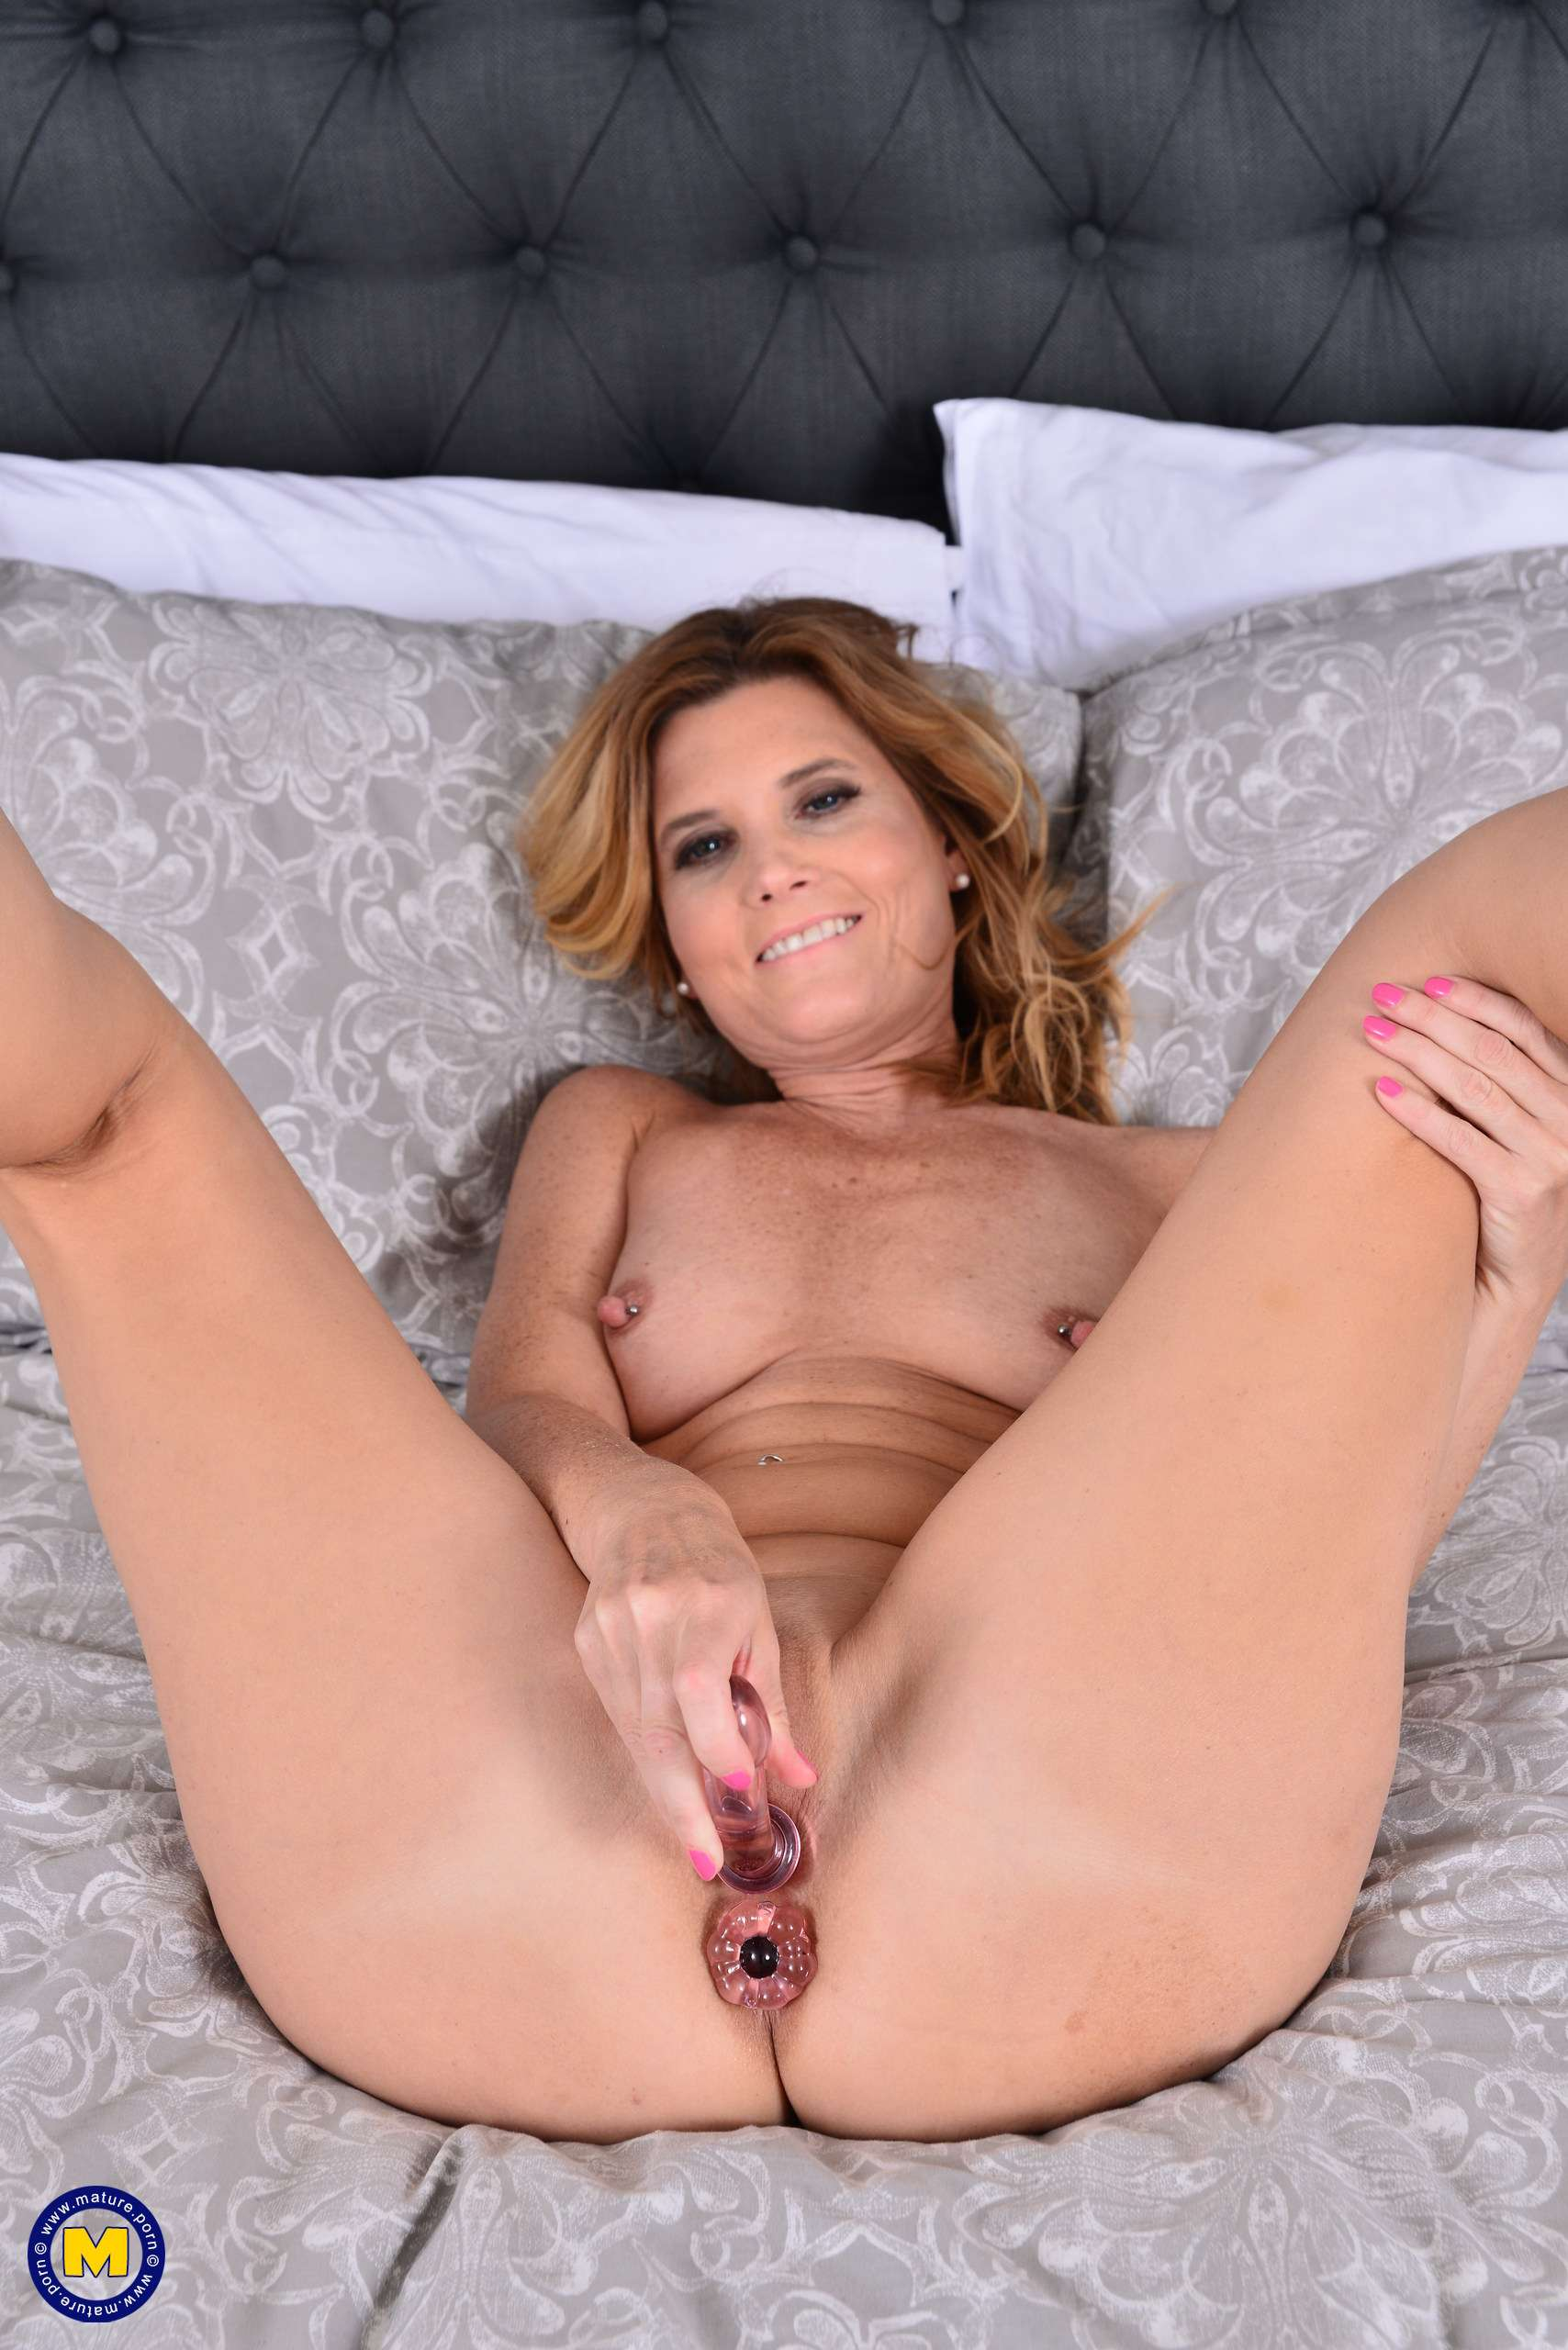 Horny American housewife Alby Daor playing in bed